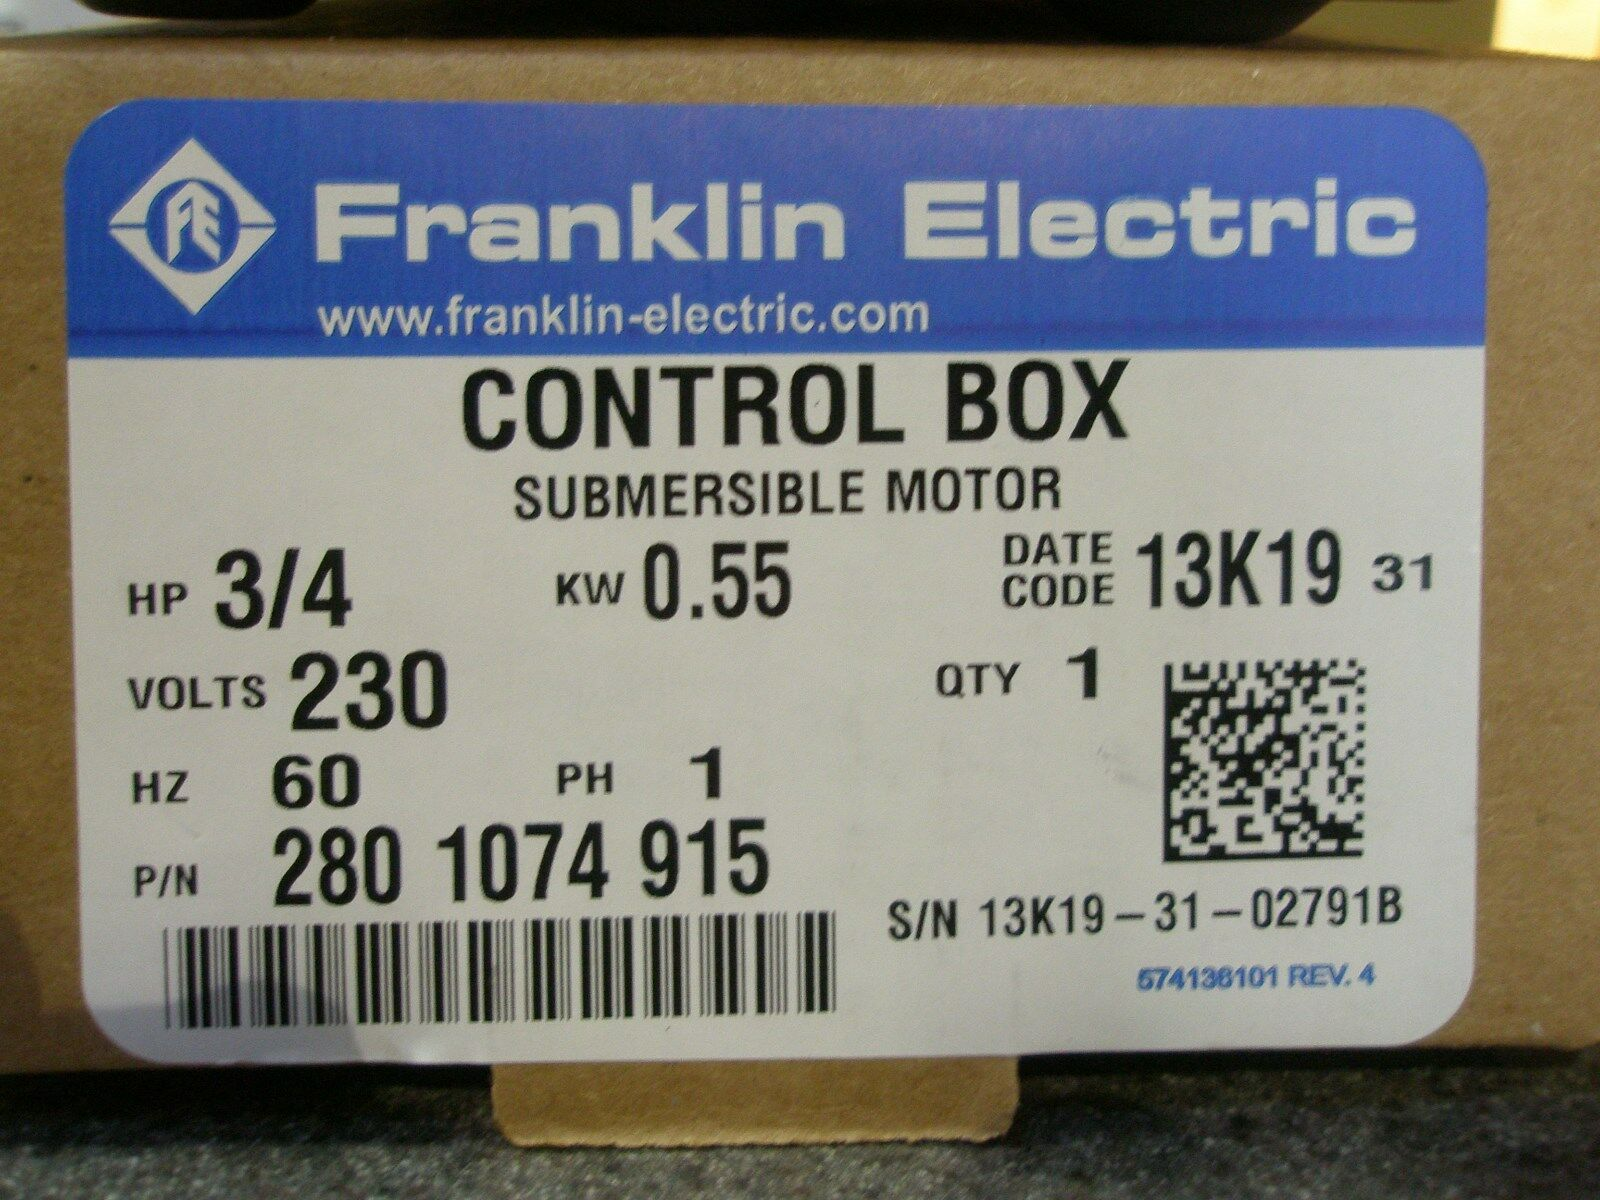 Franklin Electric 2801084915 302 Engine Parts Motor Wiring Diagram Unique Free Sample Detail Control Box S L1600